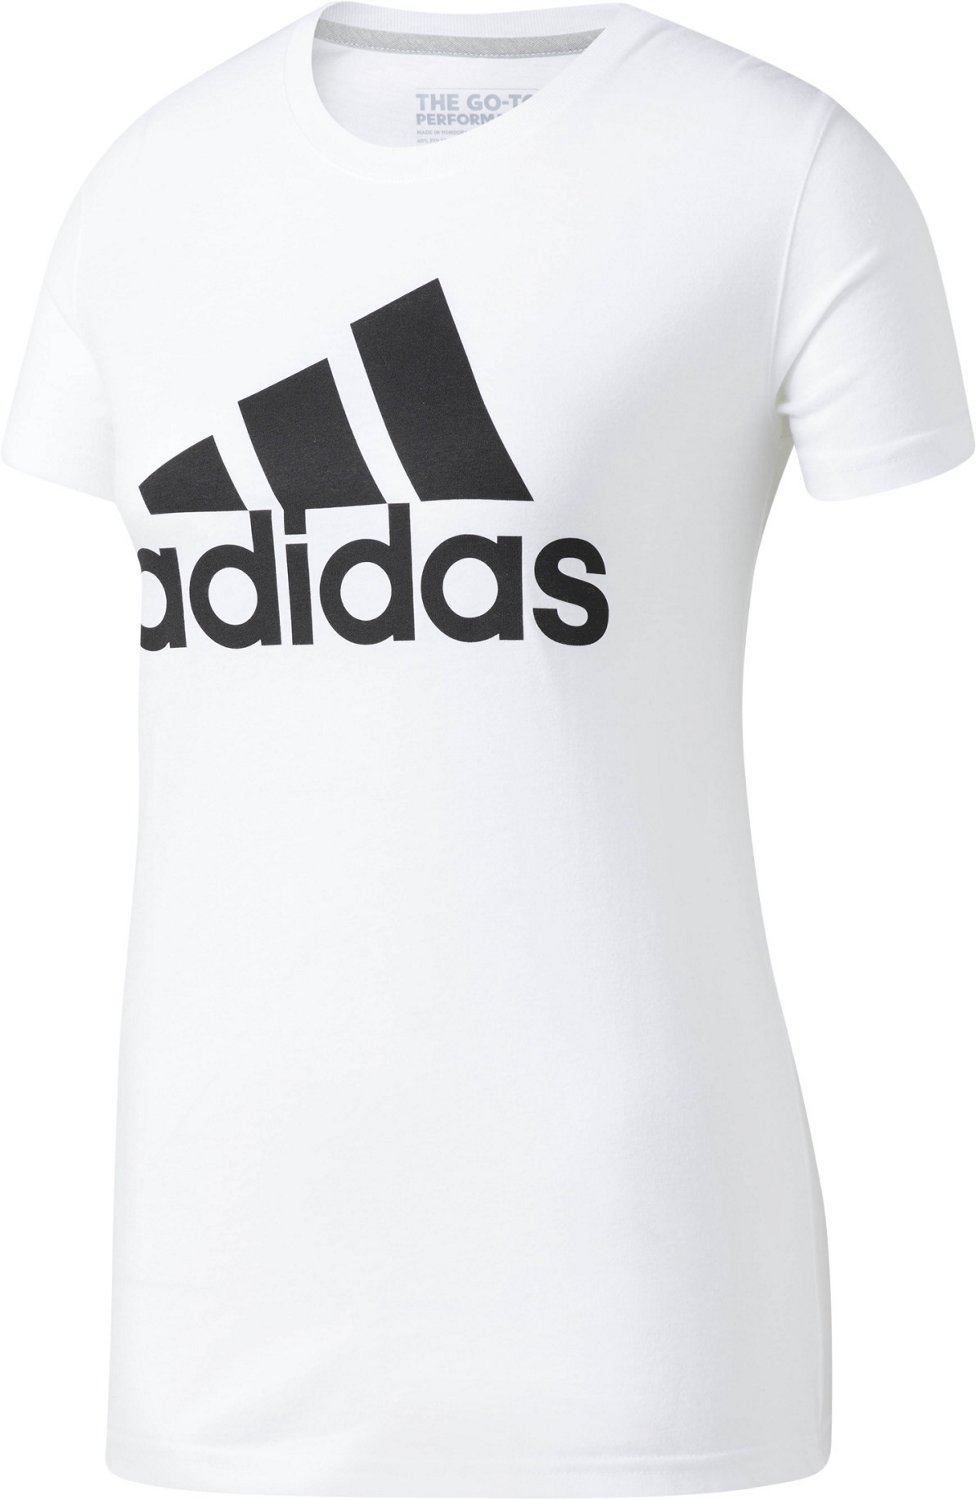 ab09f1d7a adidas Women's Badge of Sport Logo T-shirt | Academy